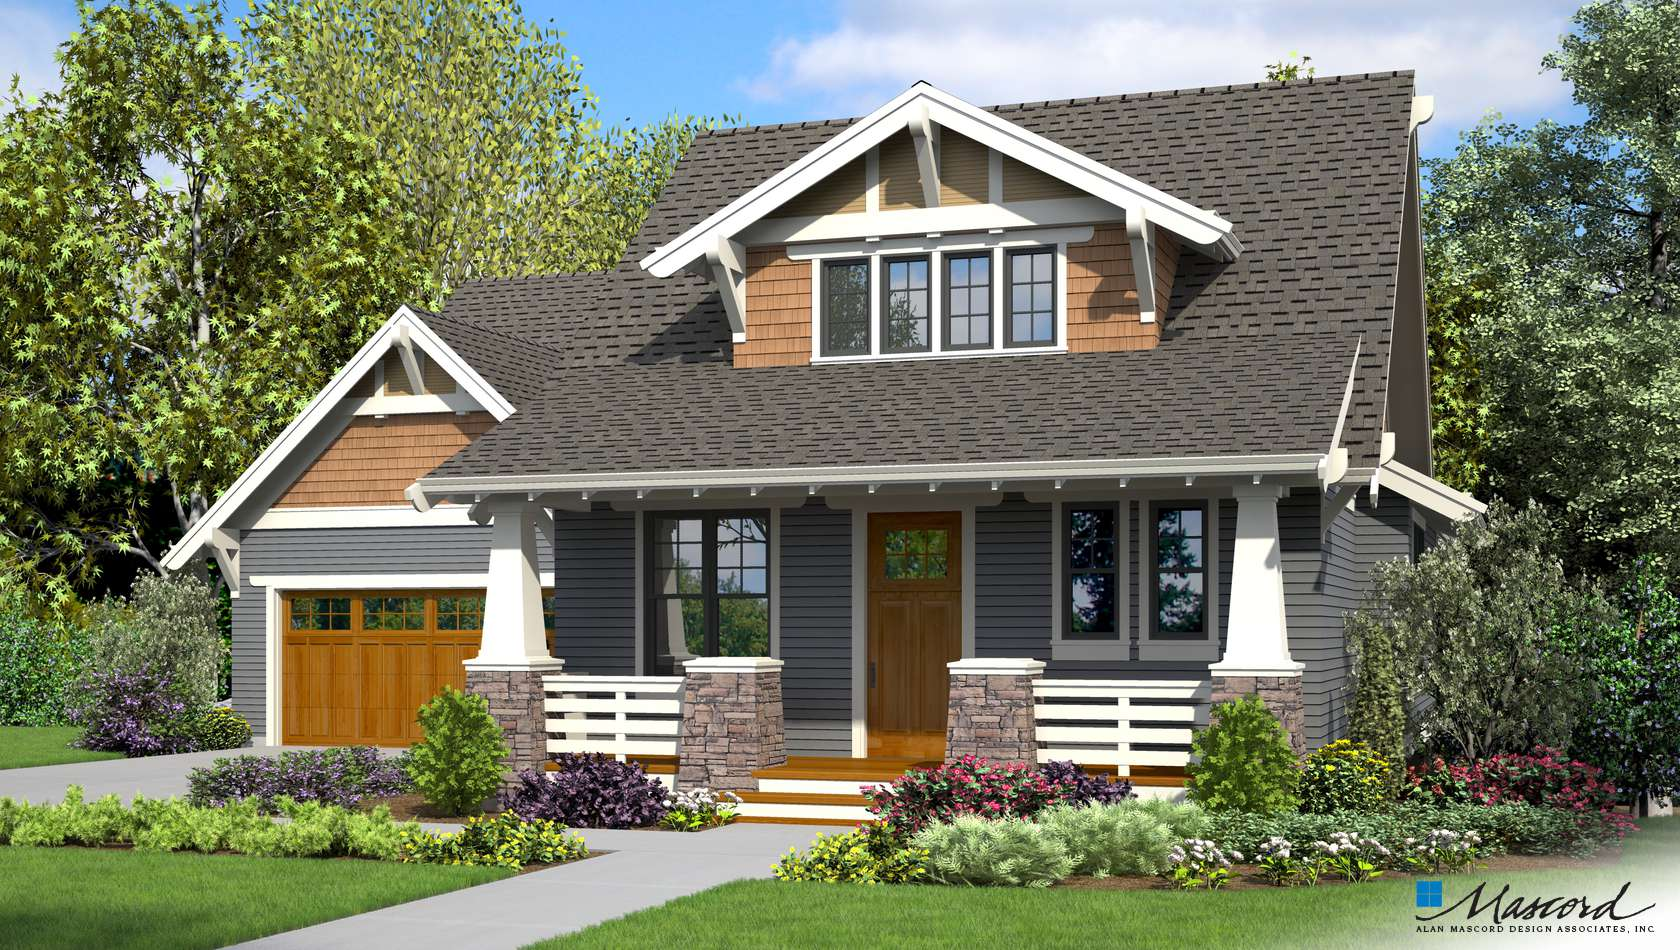 Main image for house plan 22208B: The Darcy